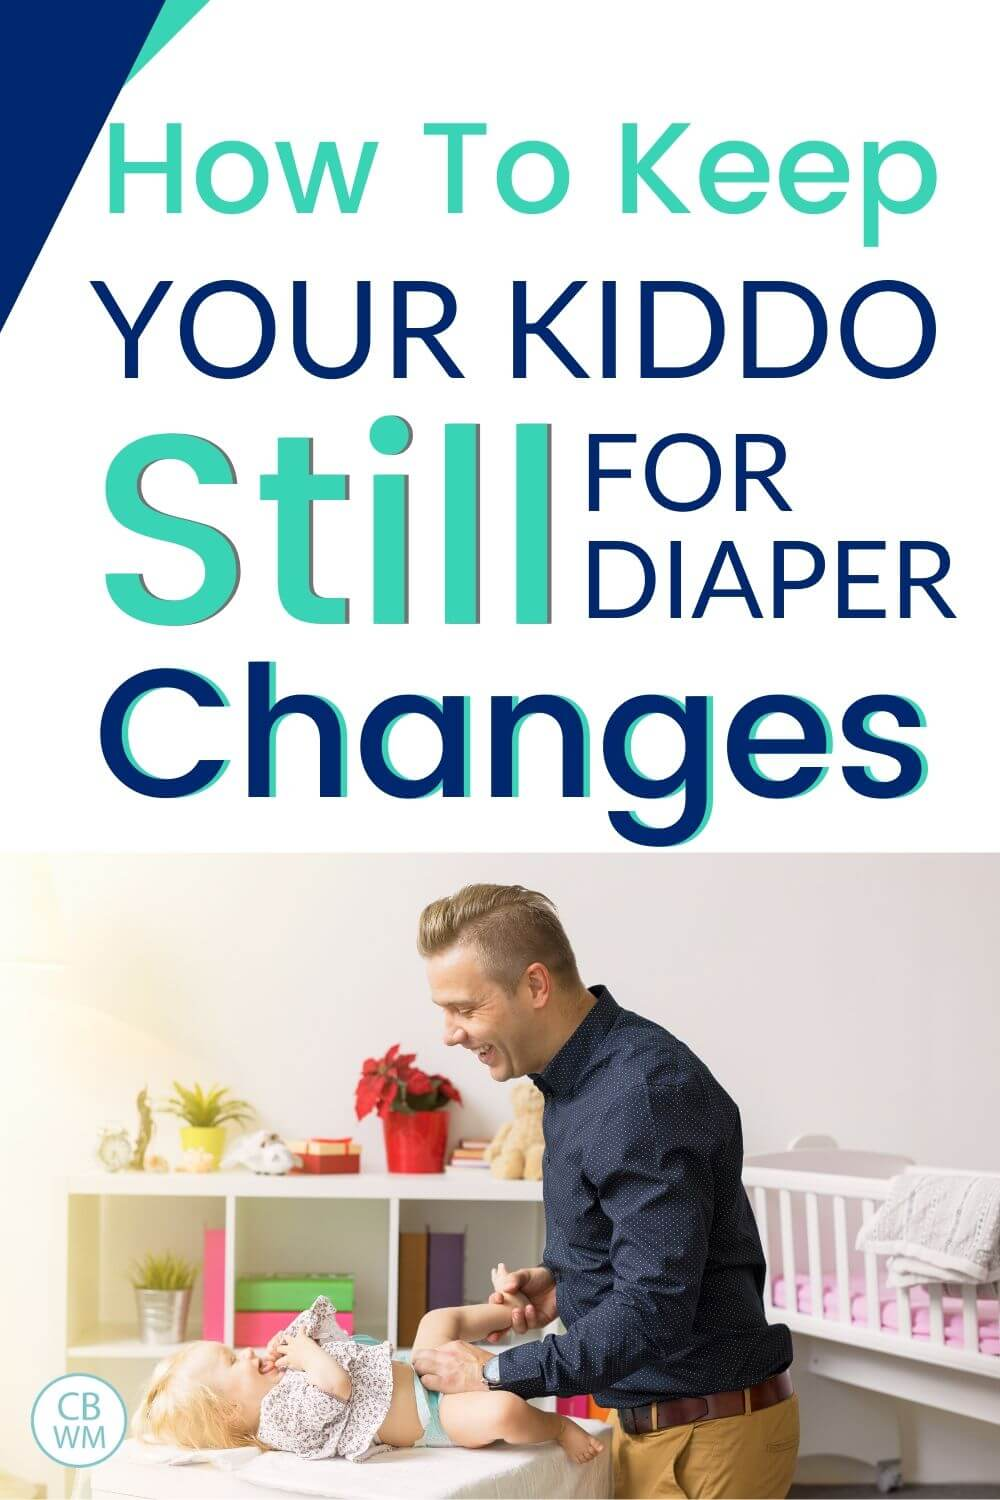 How to keep your kiddo still for the diaper change pinnable image